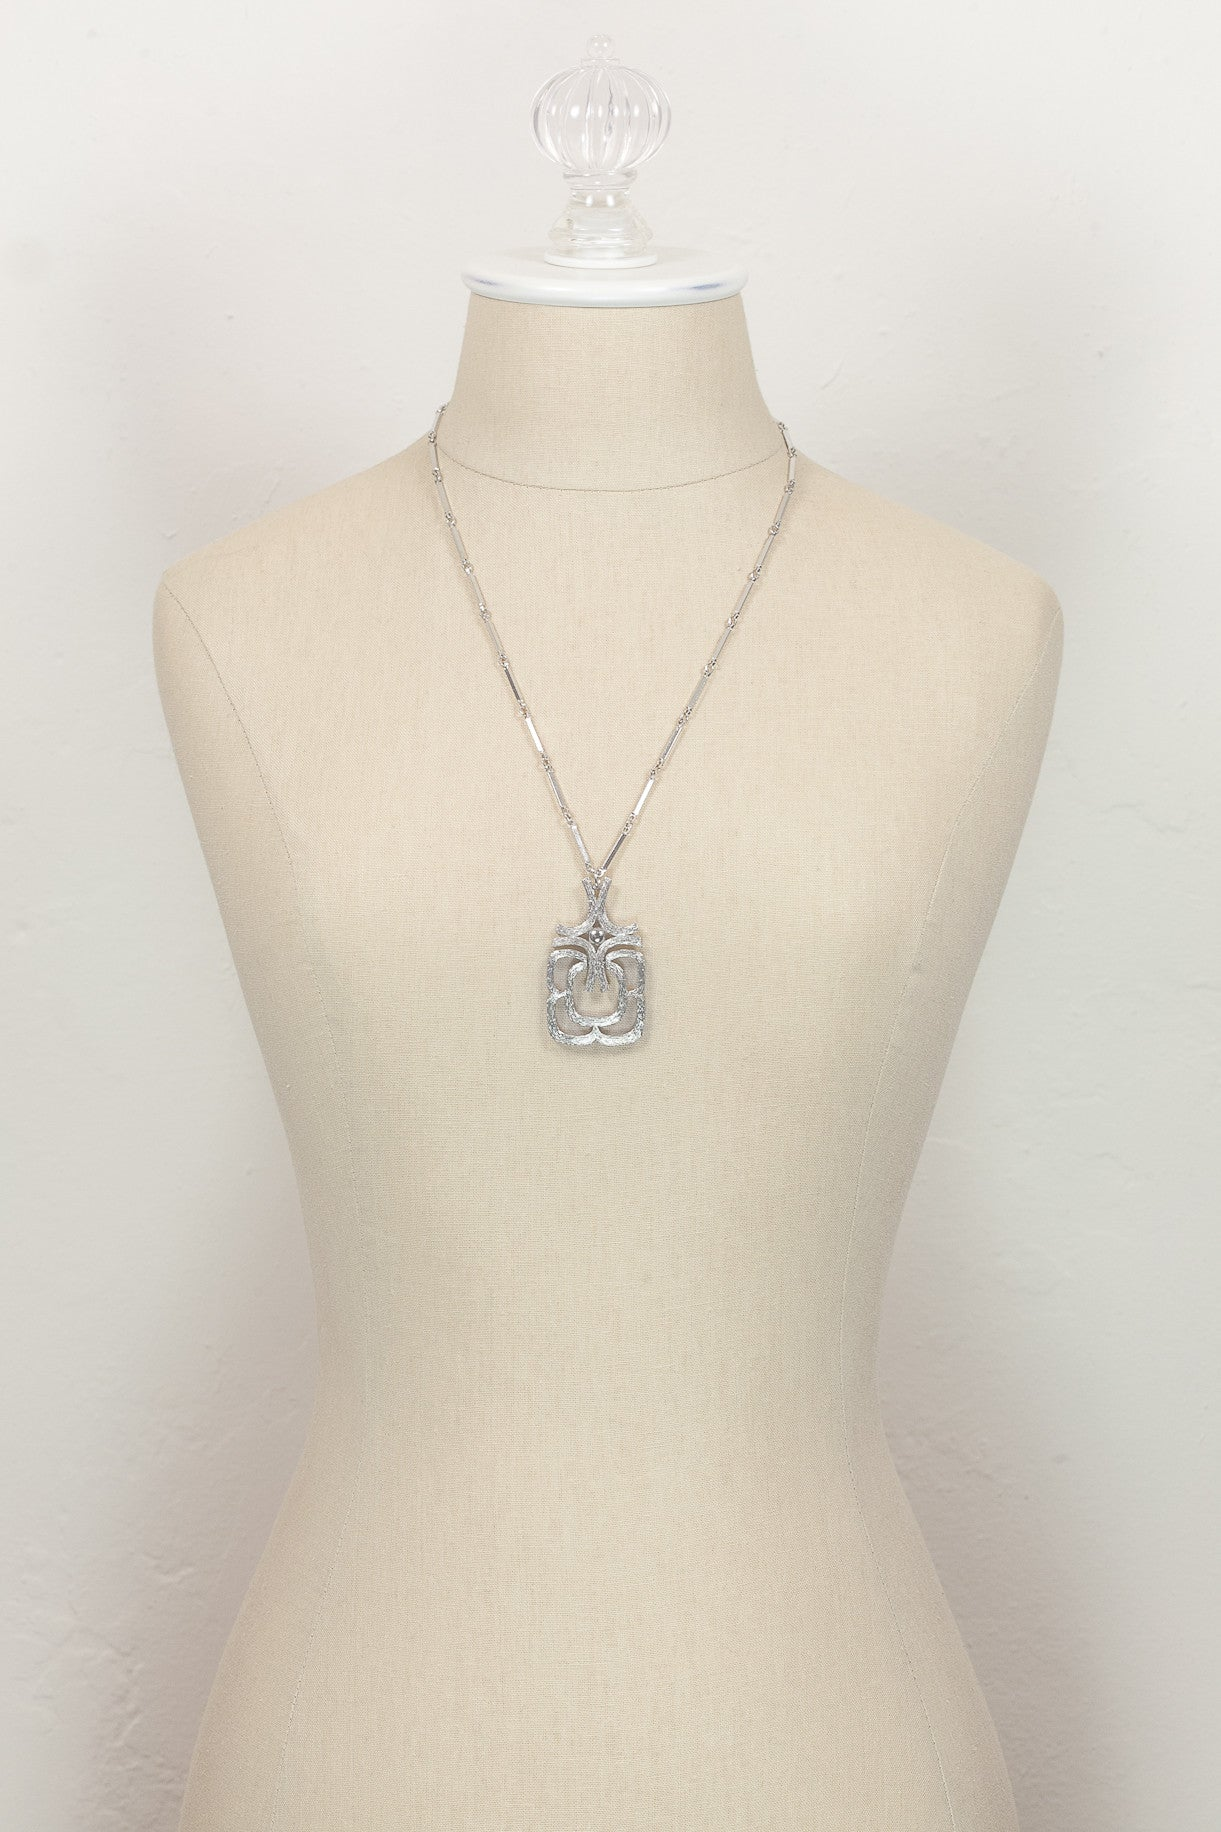 80's__Avon__Etched Silver Pendant Necklace